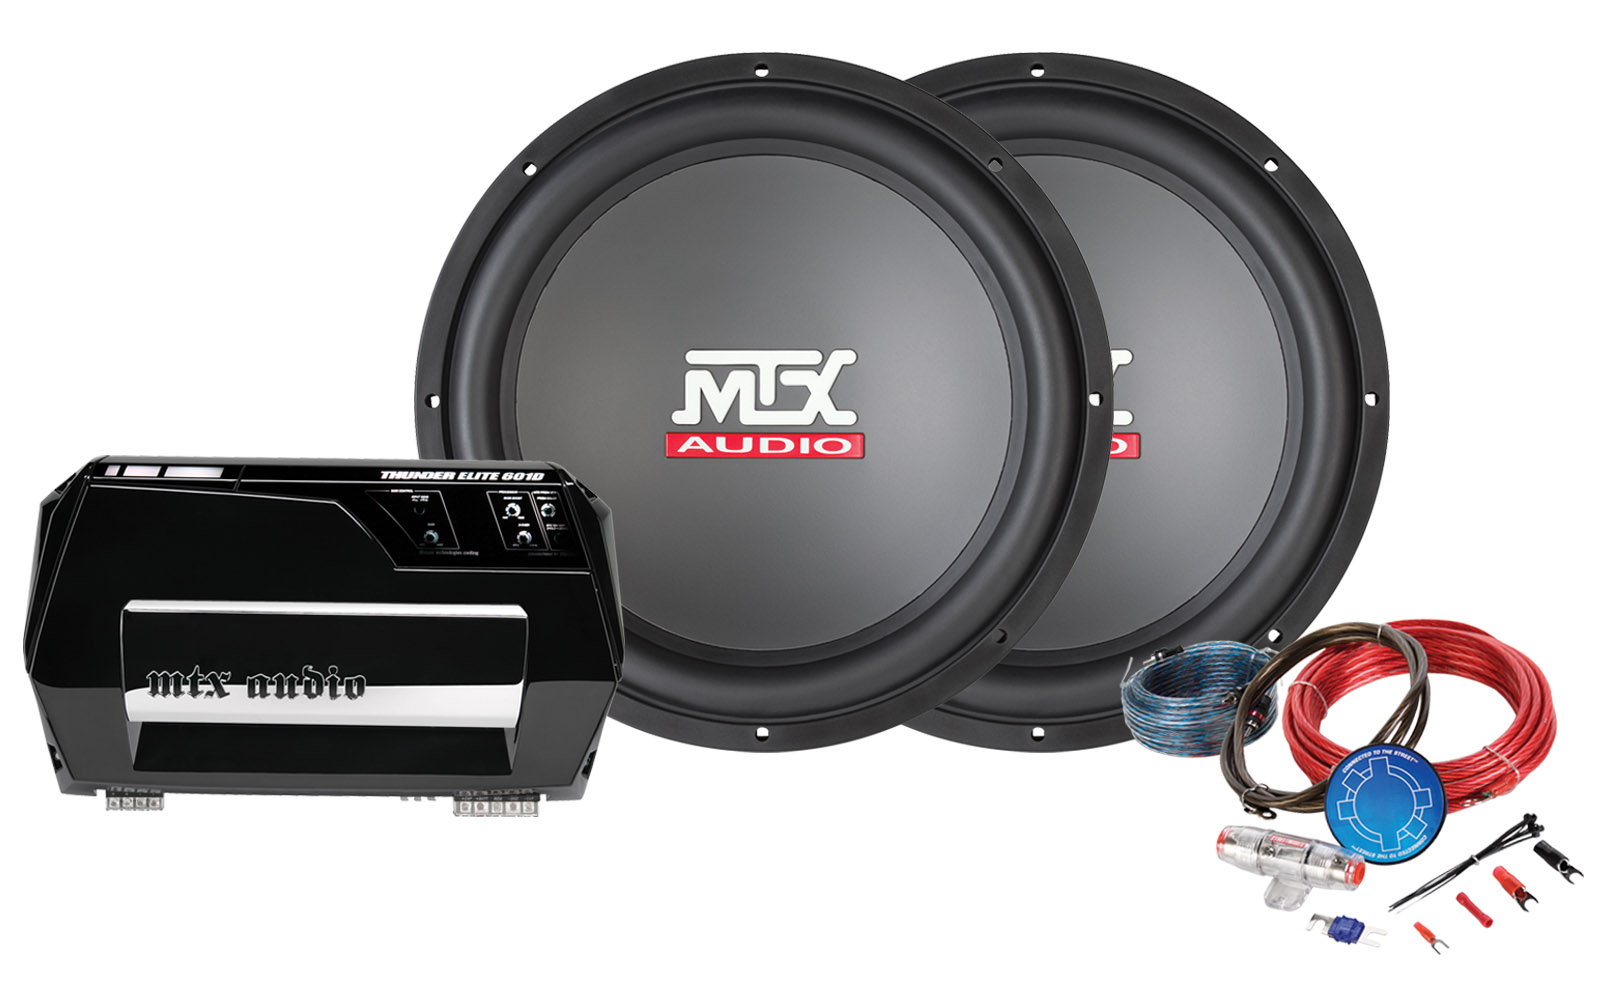 hight resolution of bass package thunder 600w amplifier 15 subwoofer mtx audio serious about sound